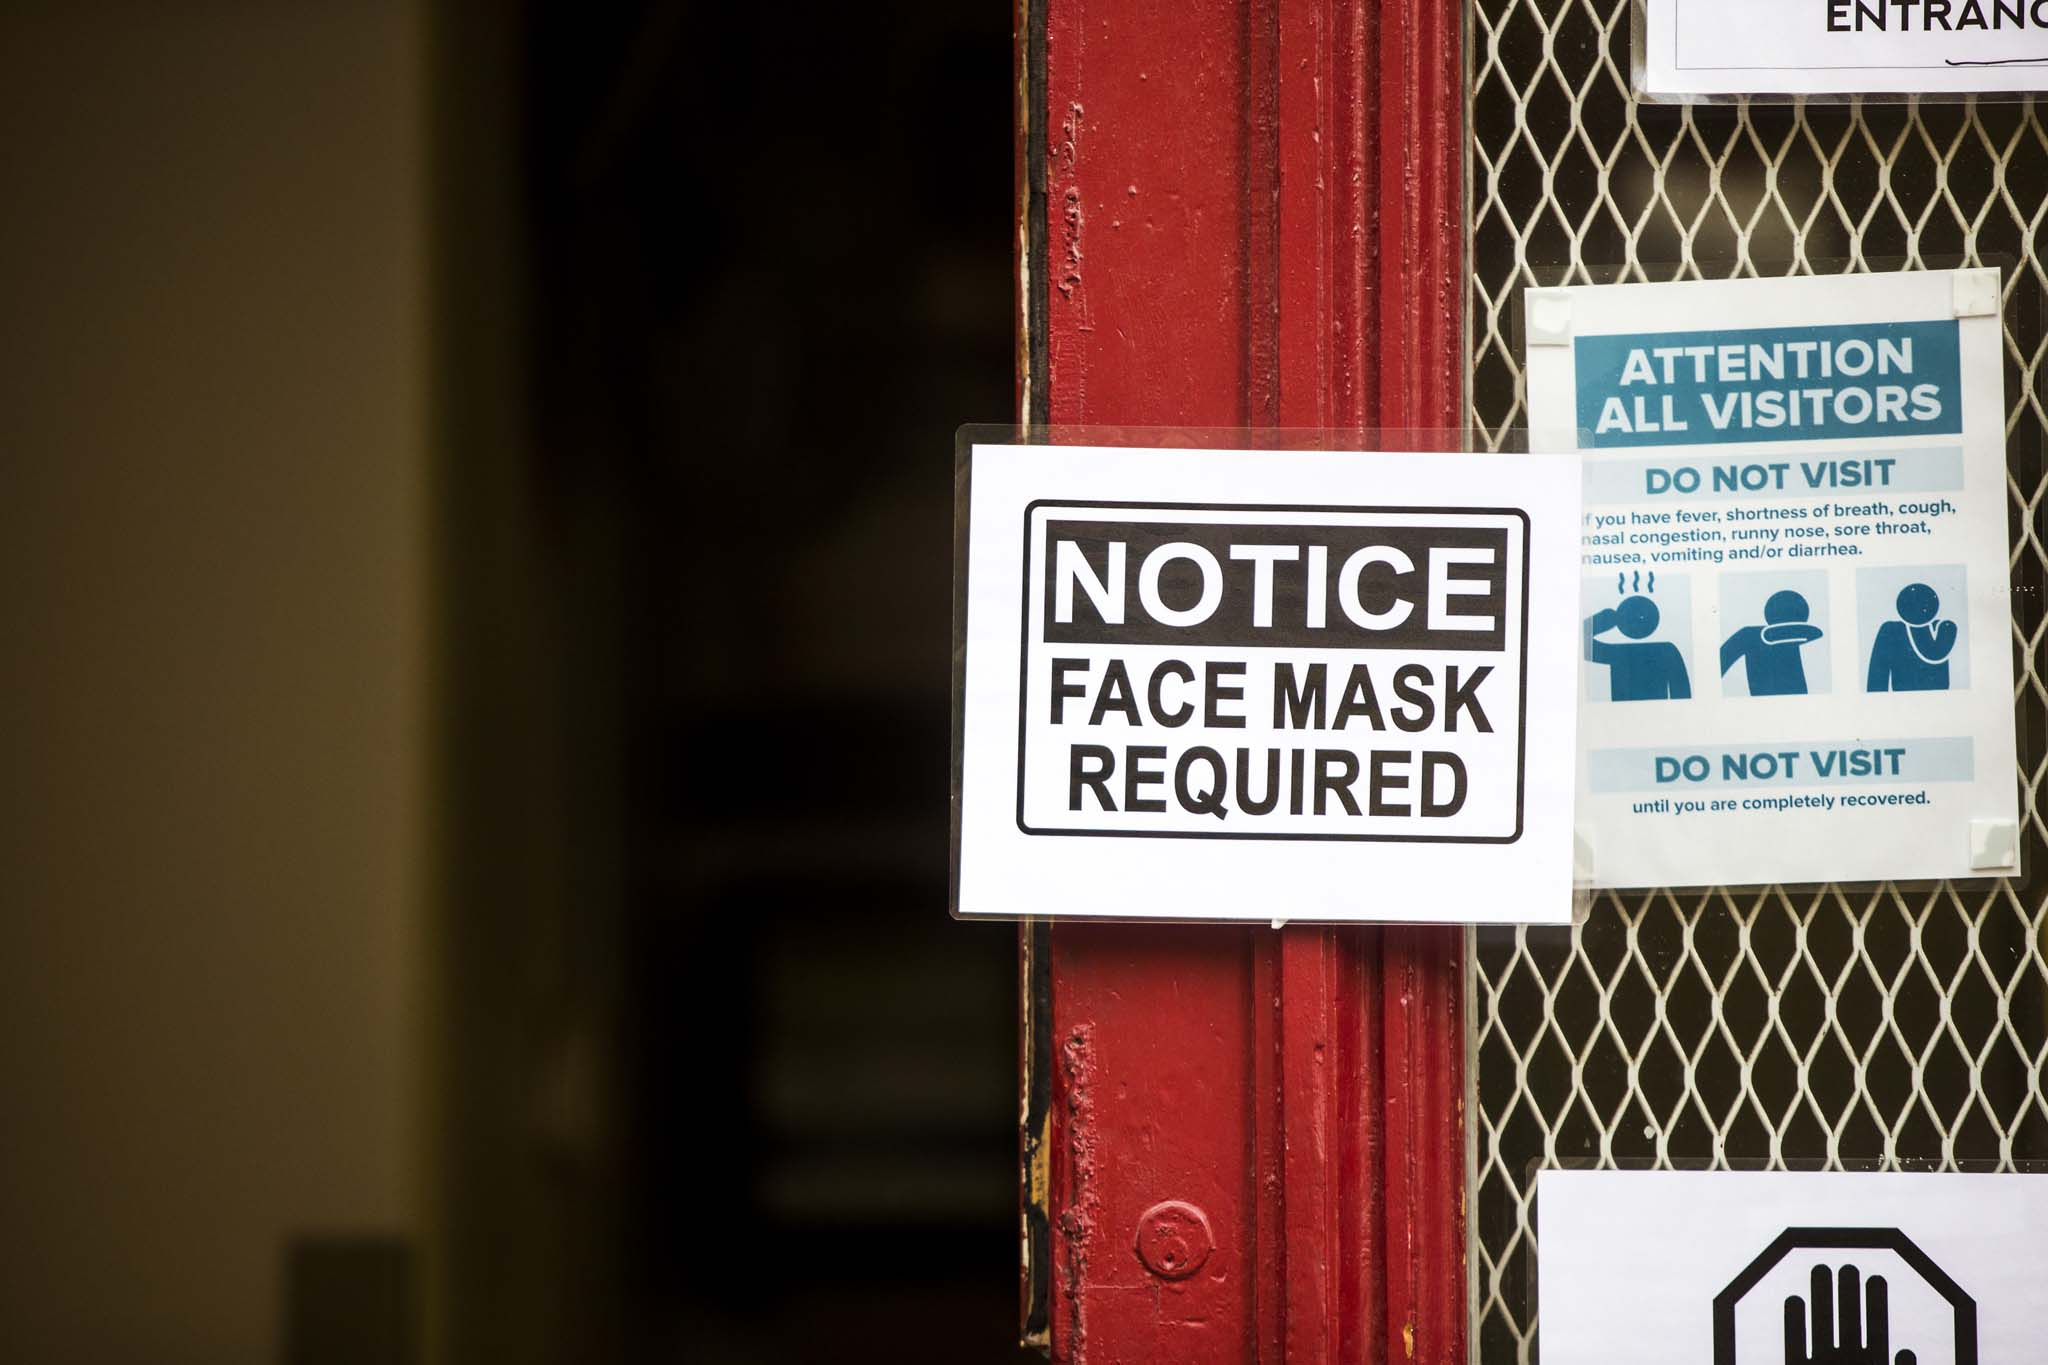 As for mask mandates, Roussin said businesses are liable for their employees only in public-facing contexts, and to remind patrons to wear masks. Beyond that, it is the individual's responsibility to wear a mask.